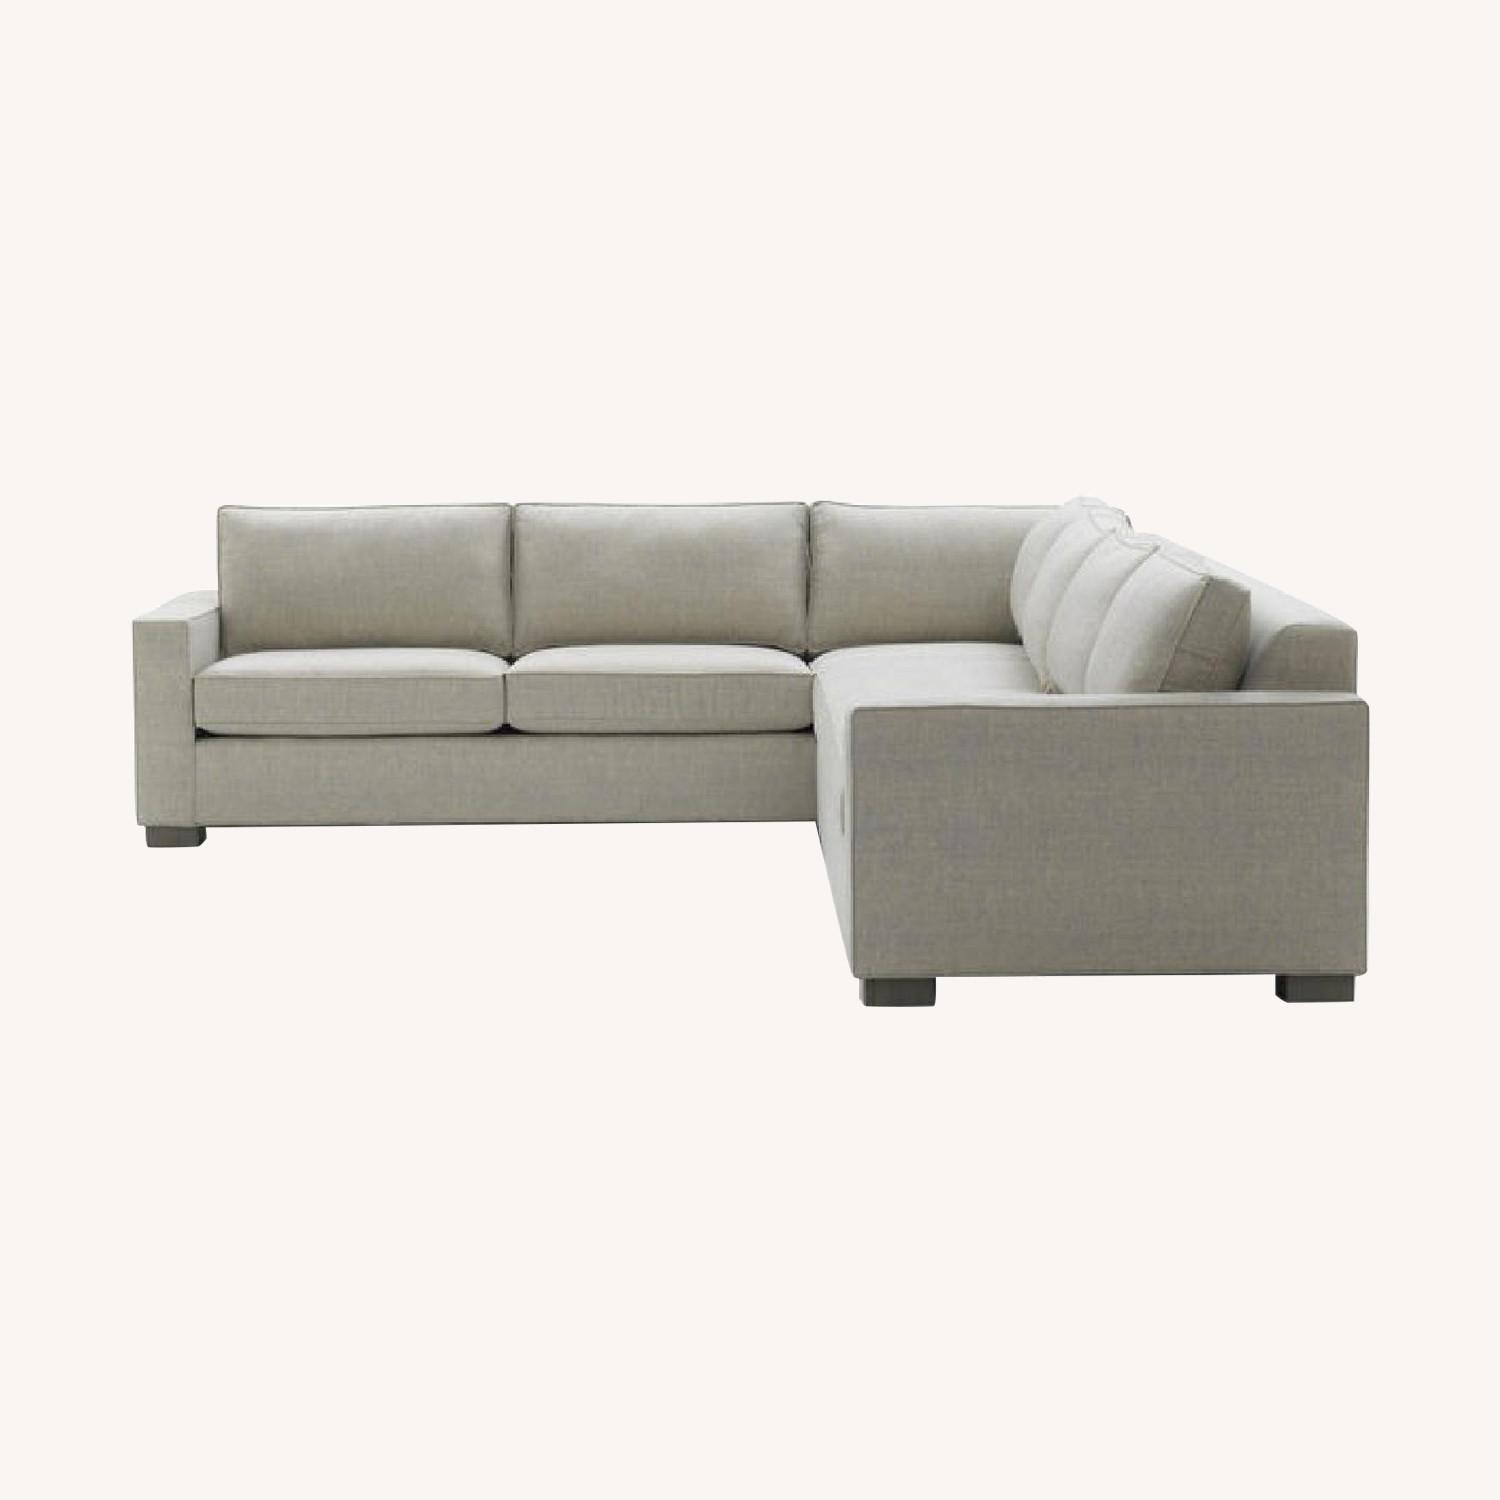 Mitchell Gold + Bob William 2 Piece Sectional Sofa - image-0